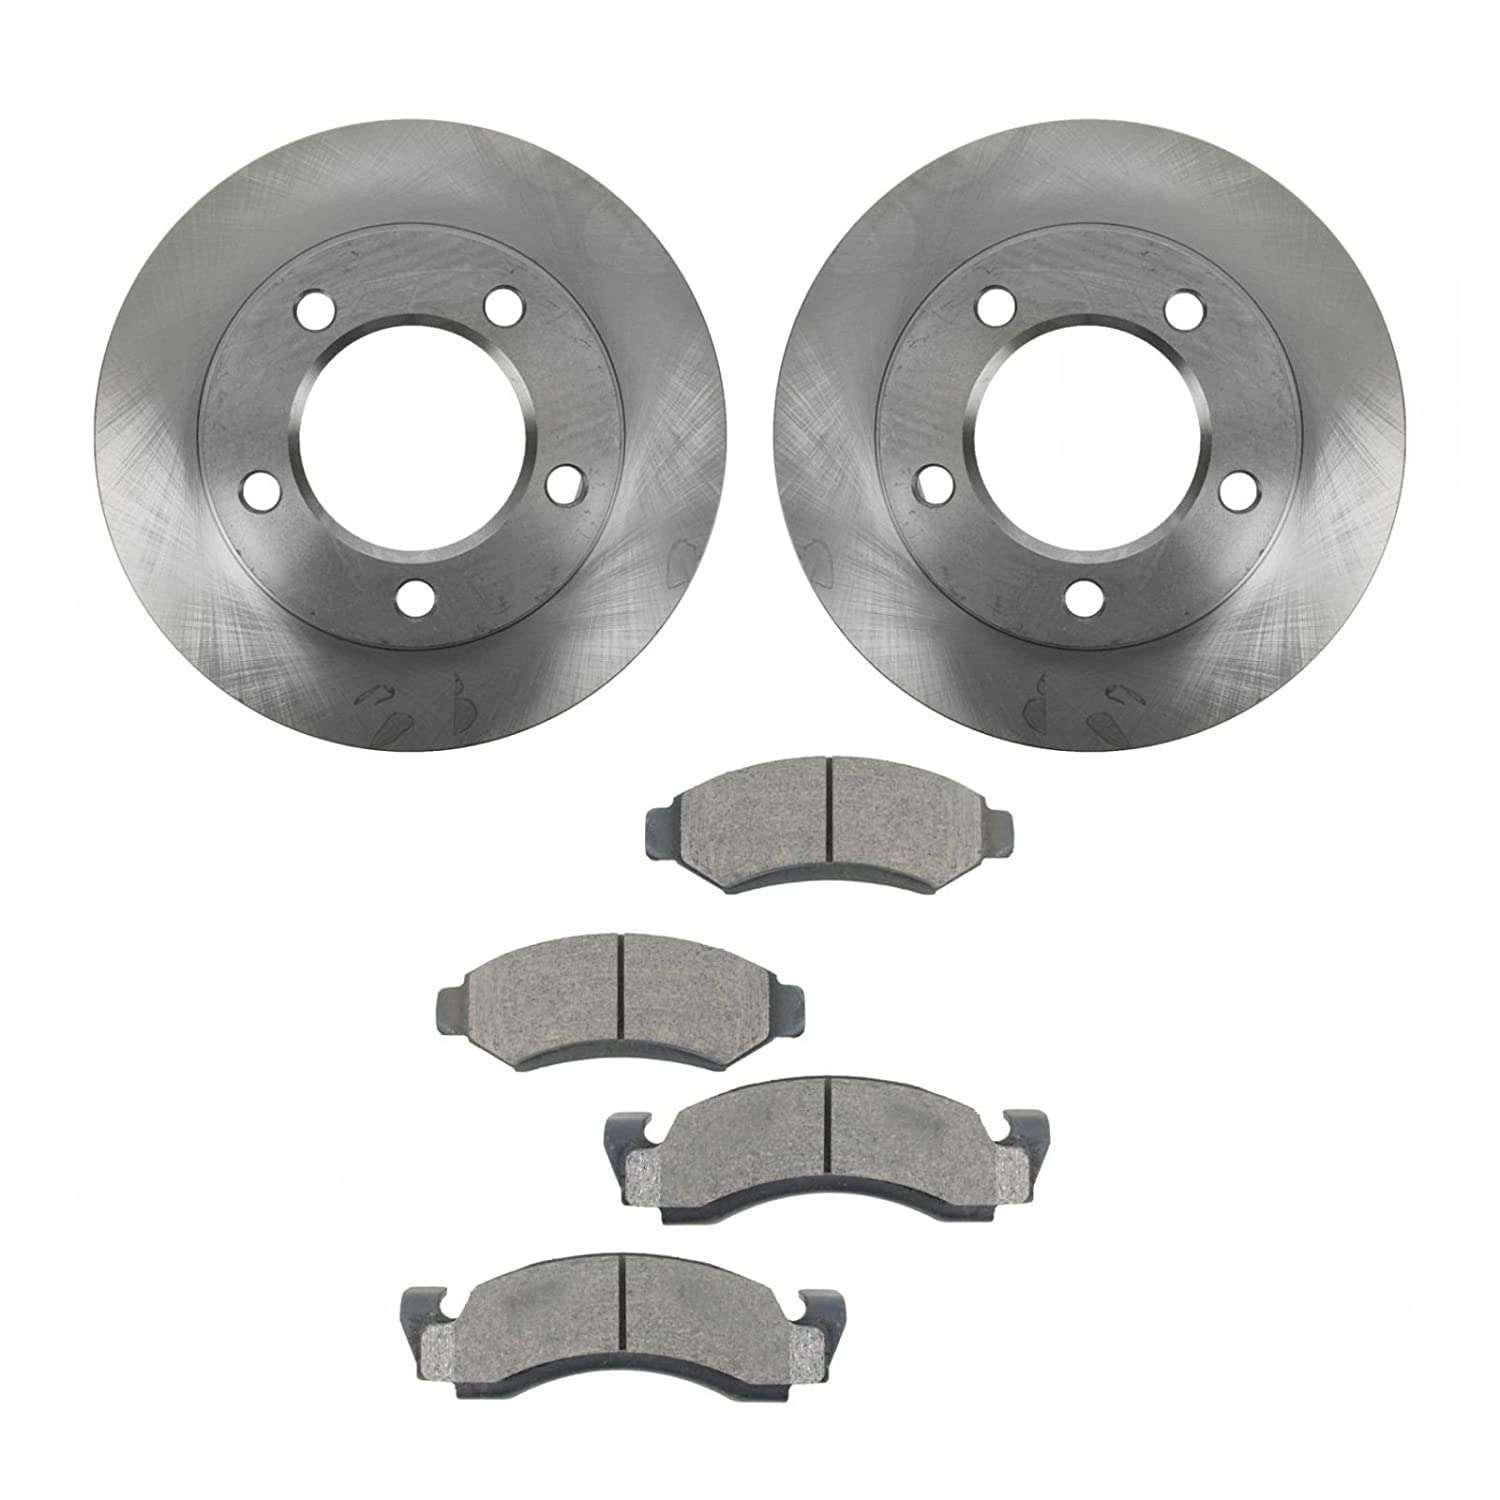 Front Ceramic Brake Pad Set & 2 Rotors Kit For Ford F150 Bronco 4X4 4WD AM Autoparts